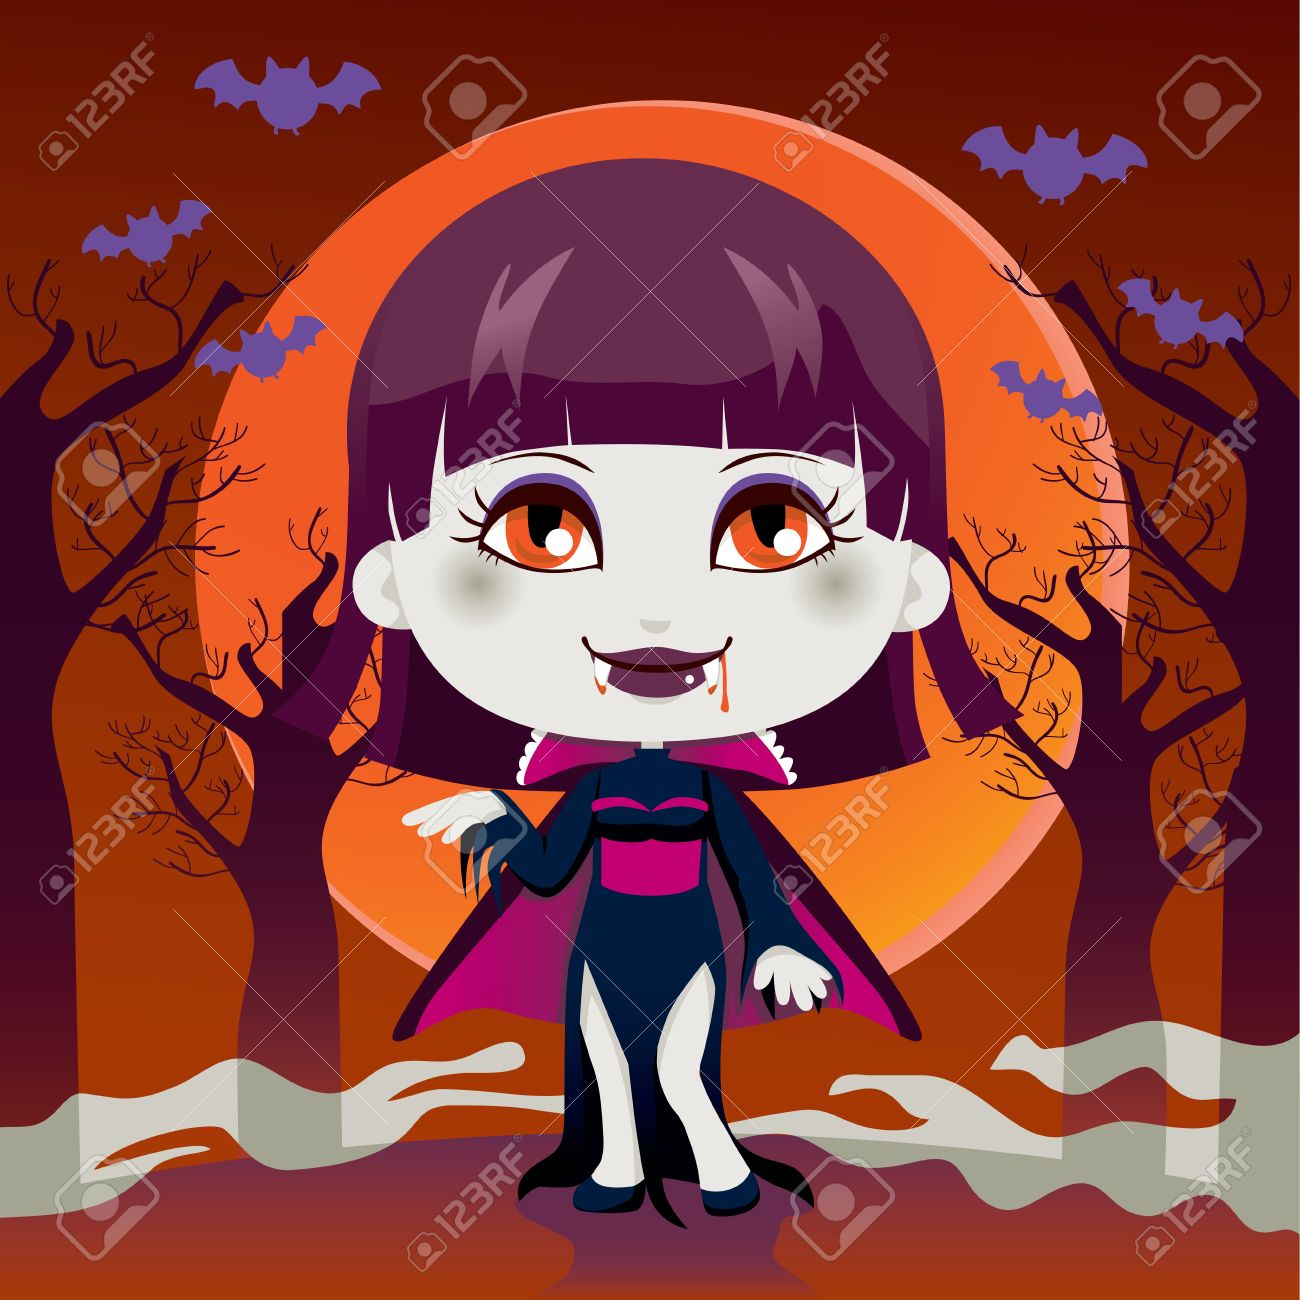 Cute Little Girl With Lady Dracula Vampire Costume For Halloween.